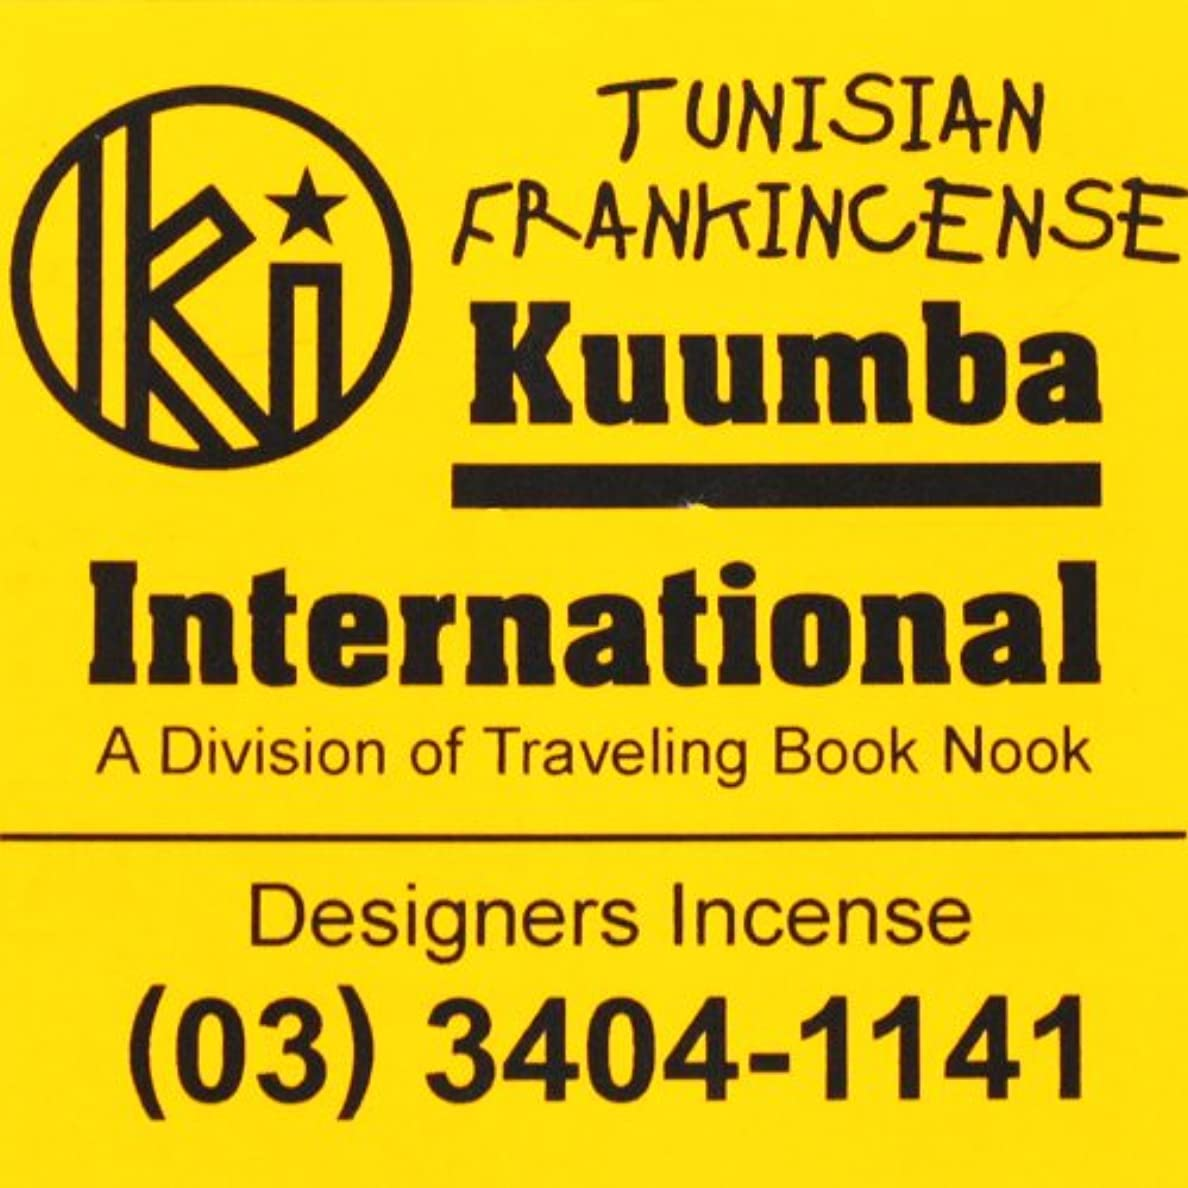 愛人誰もユニークな(クンバ) KUUMBA『classic regular incense』(TUNISIAN FRANKINCENSE) (Regular size)